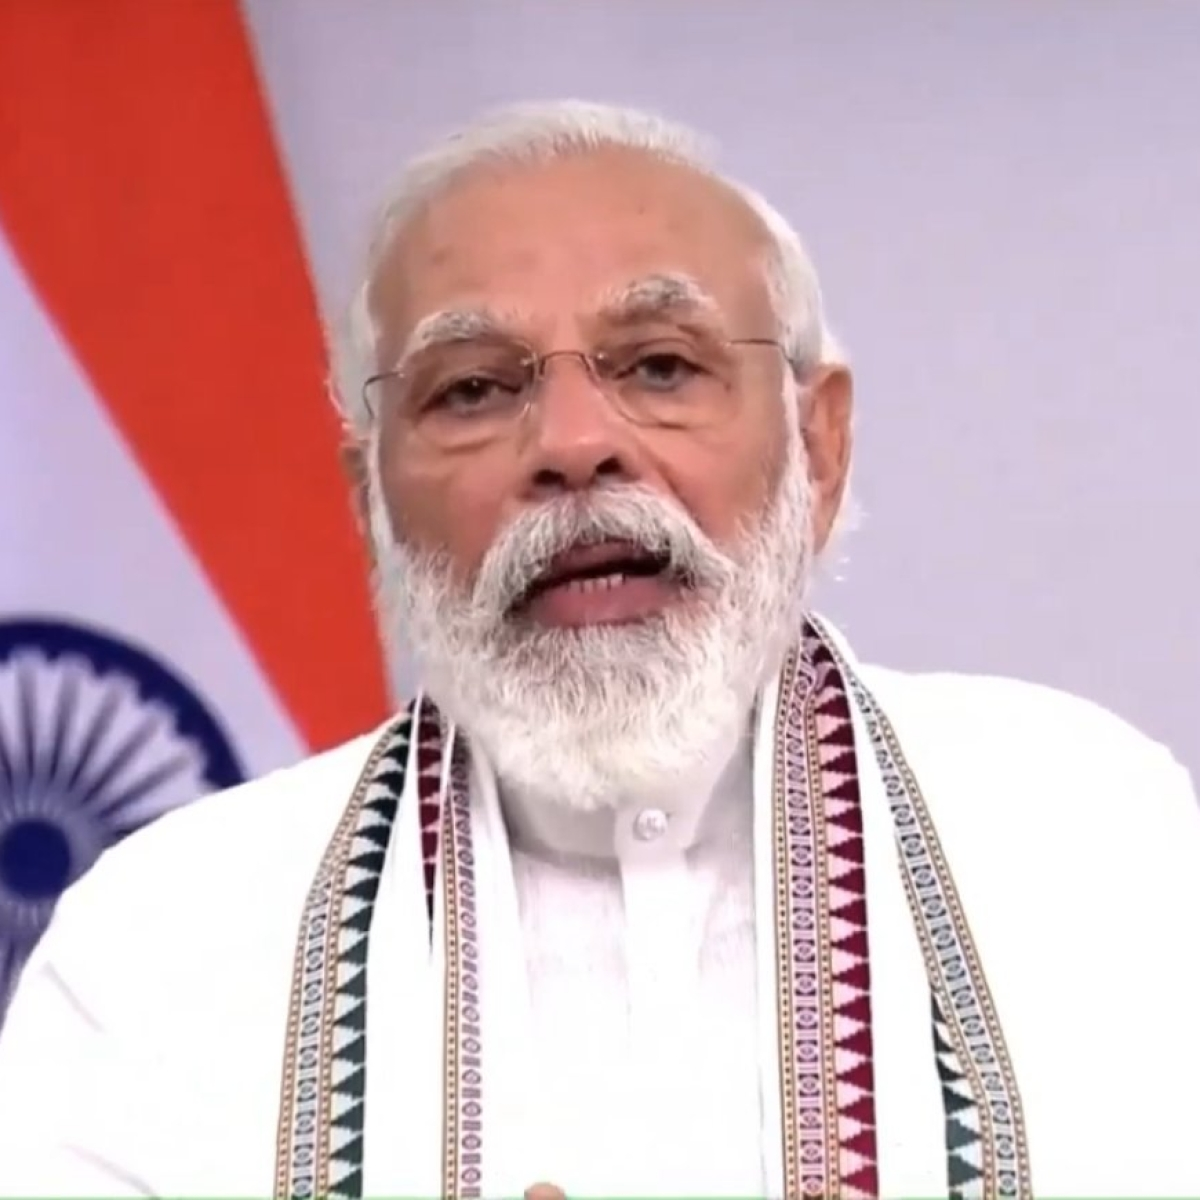 'Each one, protect one': PM Modi launches 'Tika Utsav' amidst rise in COVID-19 cases in India